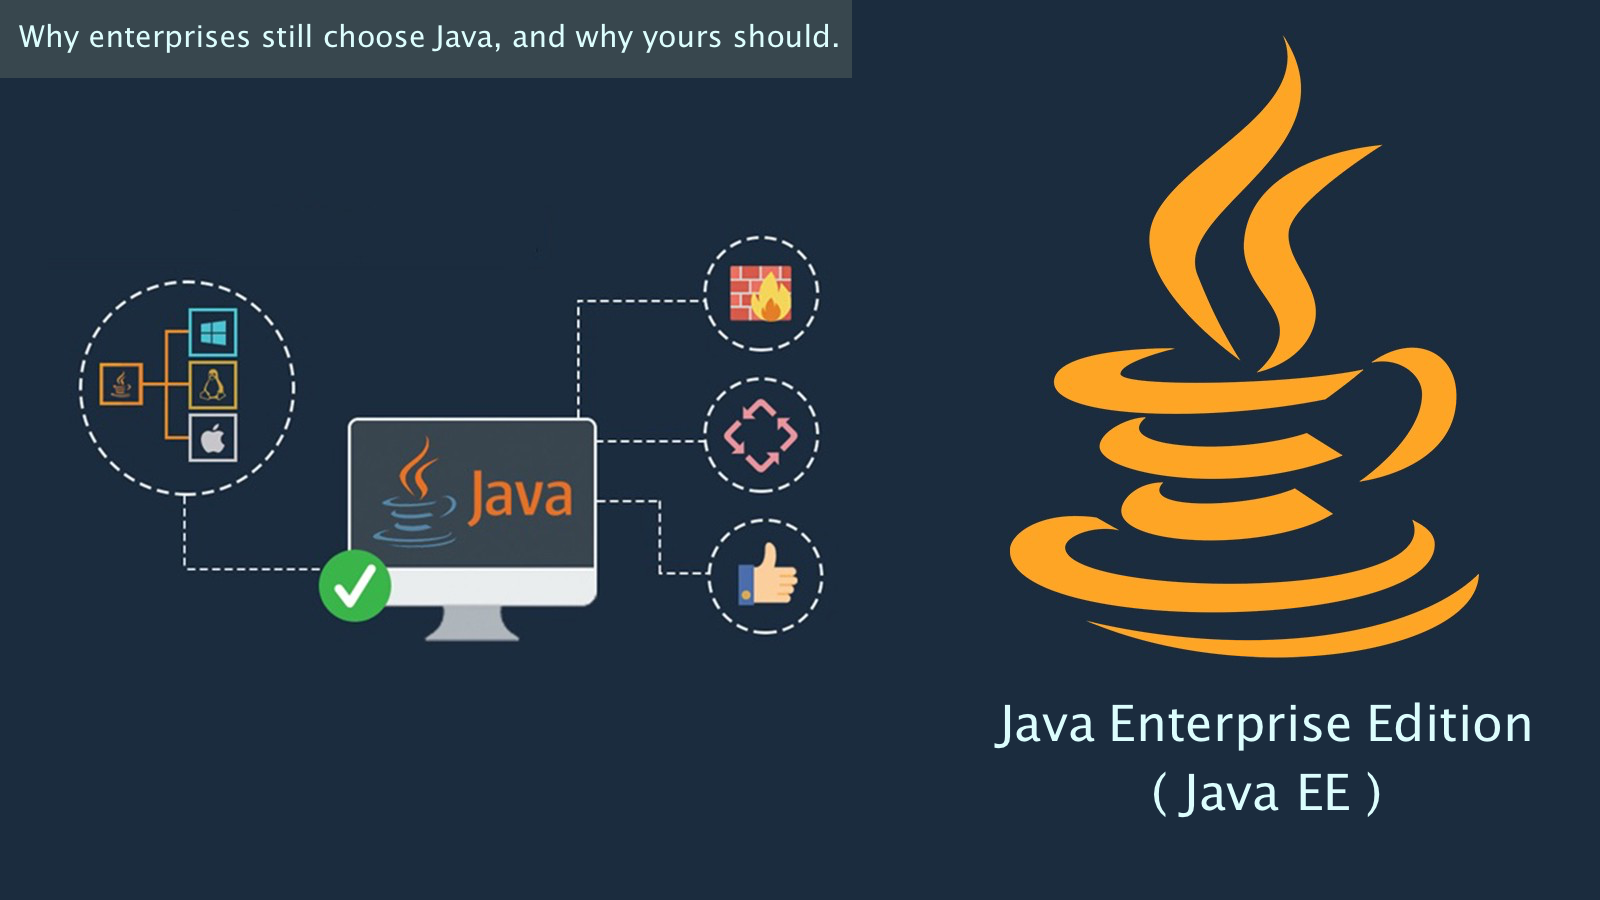 Why enterprises still choose Java, and why yours should | by Anietie Asuquo | Medium